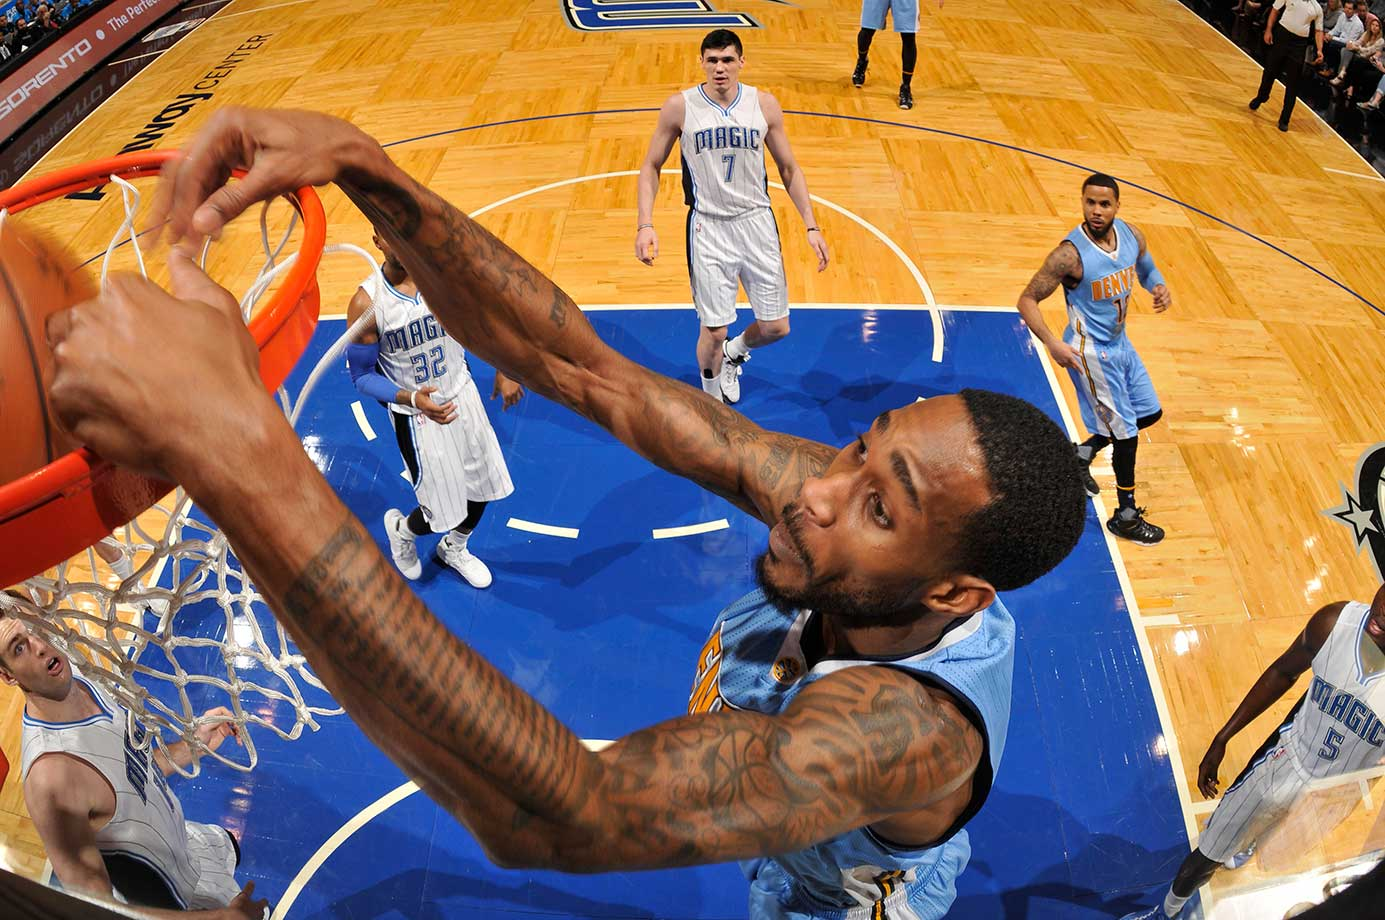 Will Barton of the Denver Nuggets dunks against the Orlando Magic.